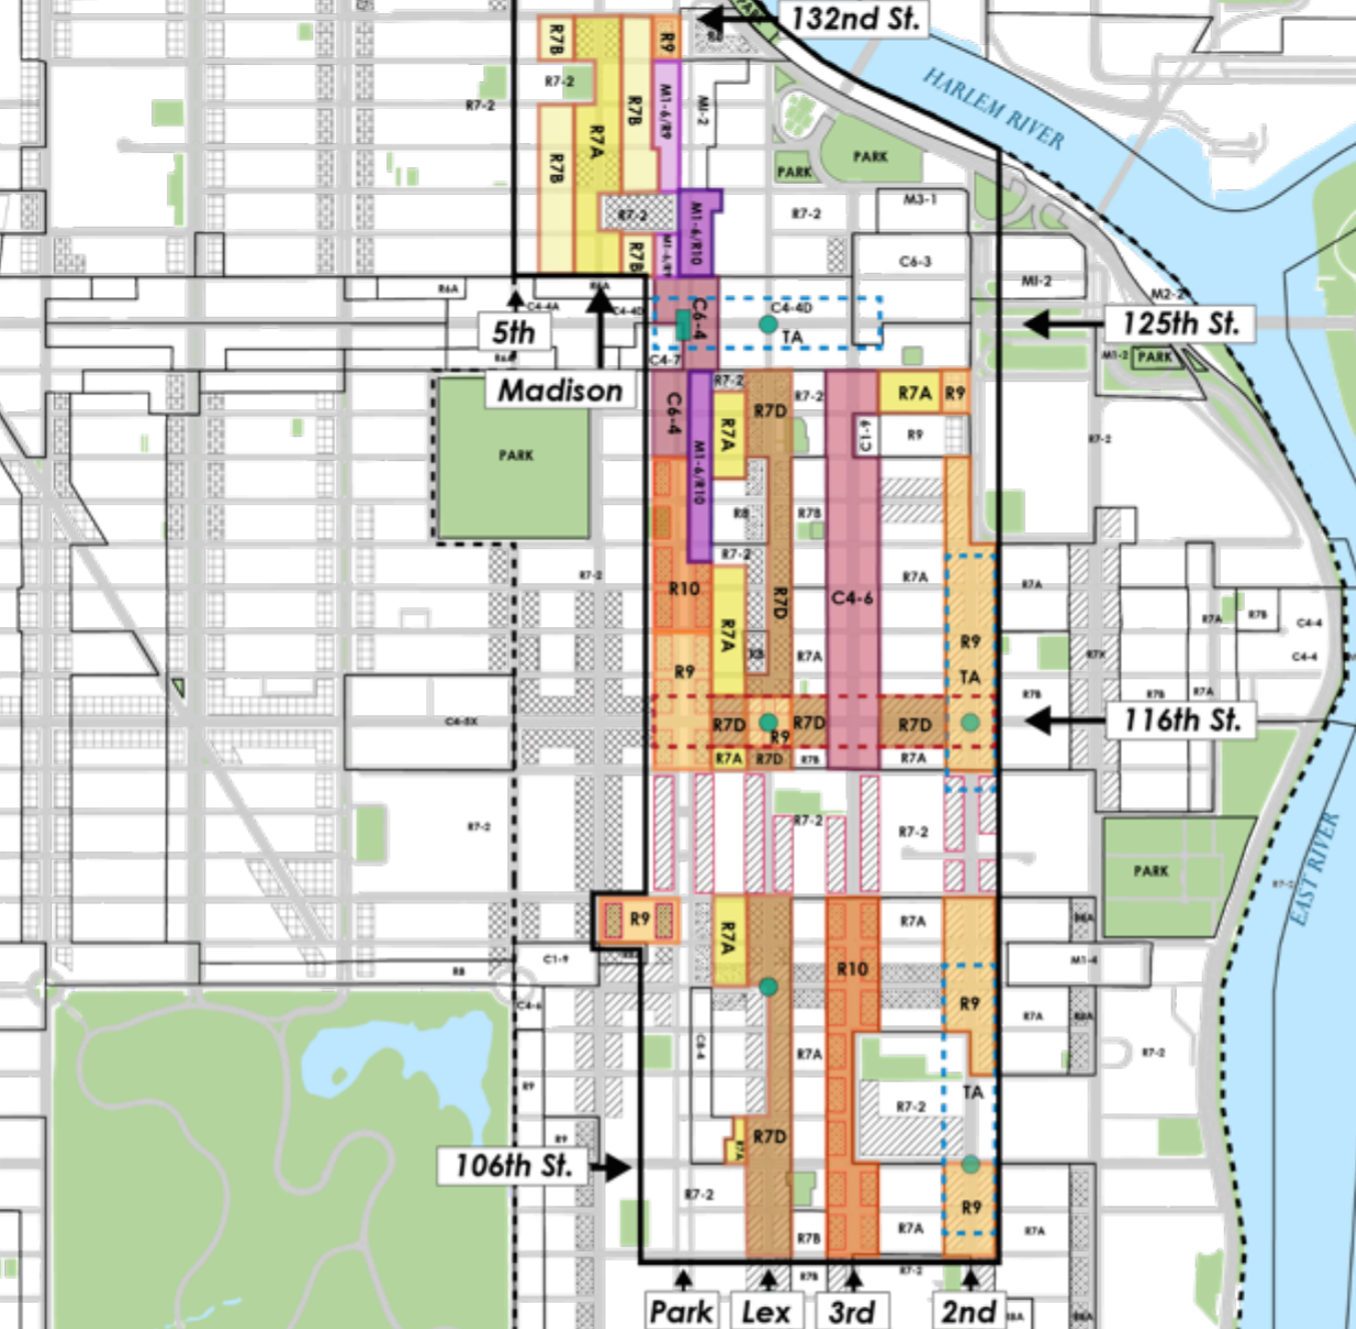 Map Of New York Harlem.Initial East Harlem Rezoning Plan Promises 30 Story Towers And Less